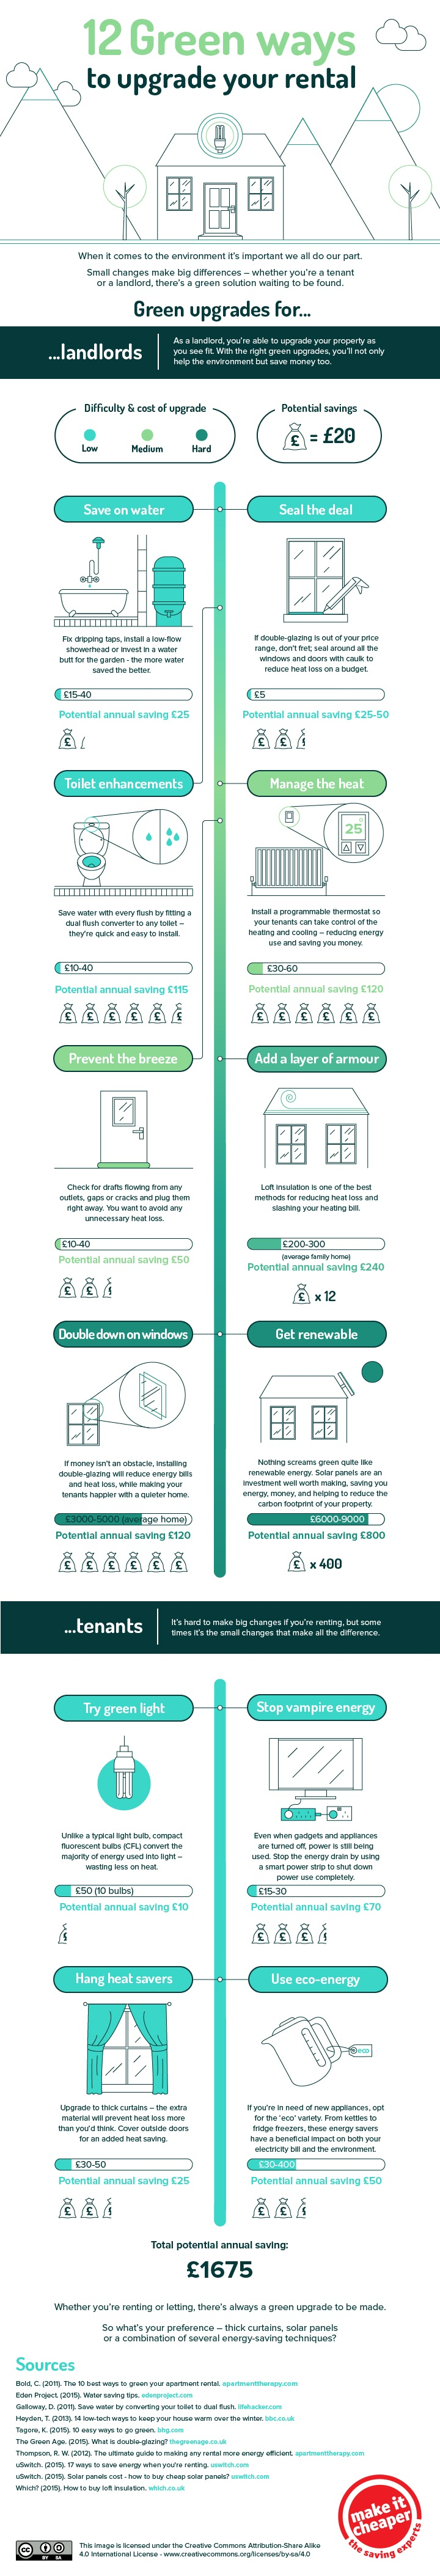 12-green-ways-to-upgrade-your-rental-v1.jpg